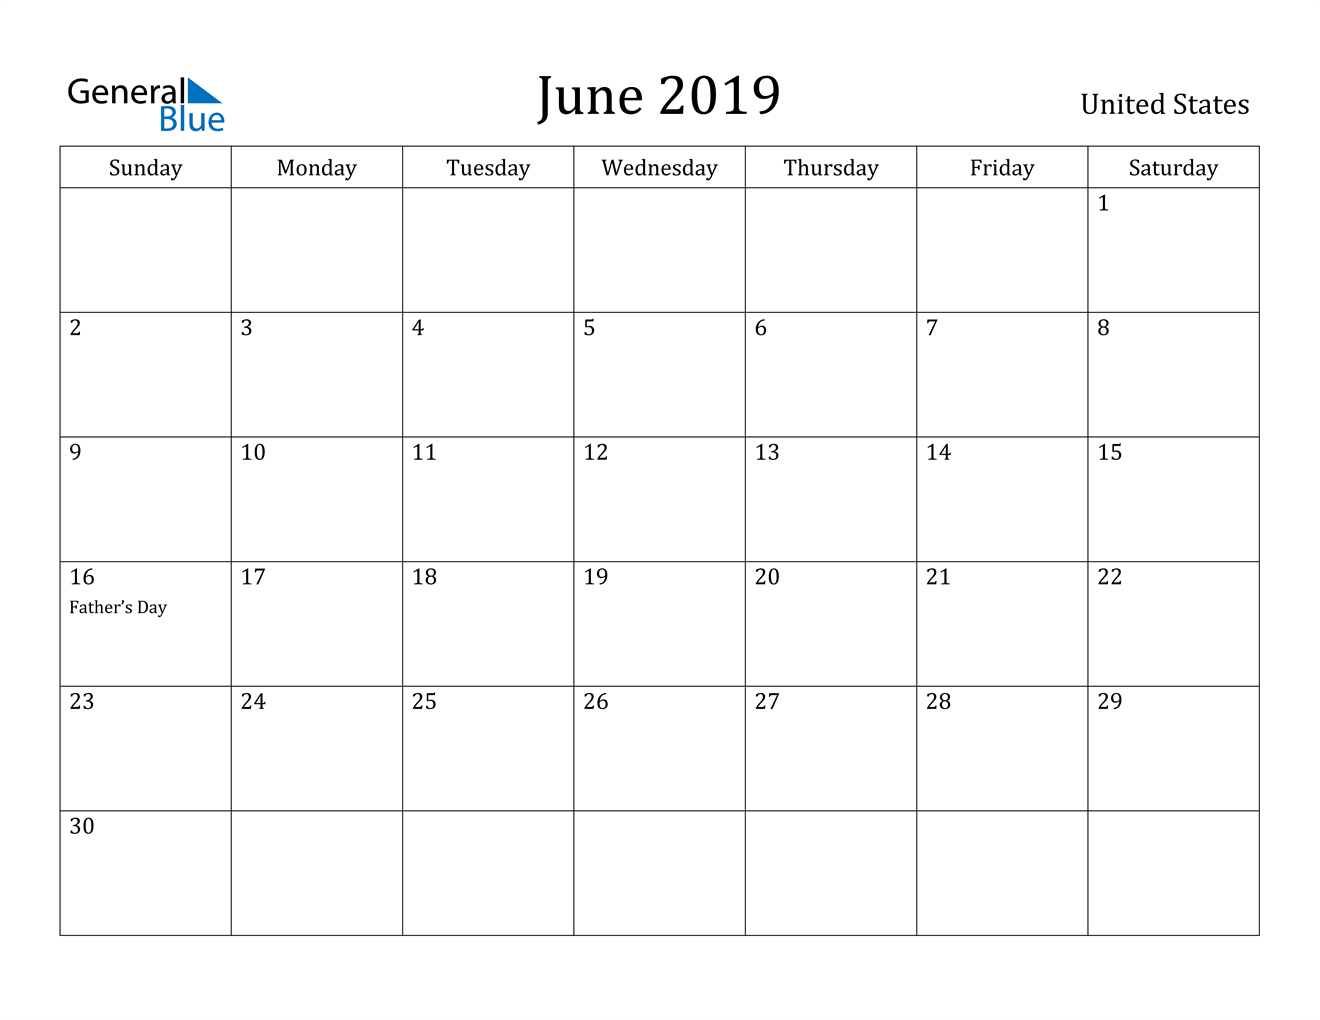 Image of June 2019 United States Calendar with Holidays Calendar